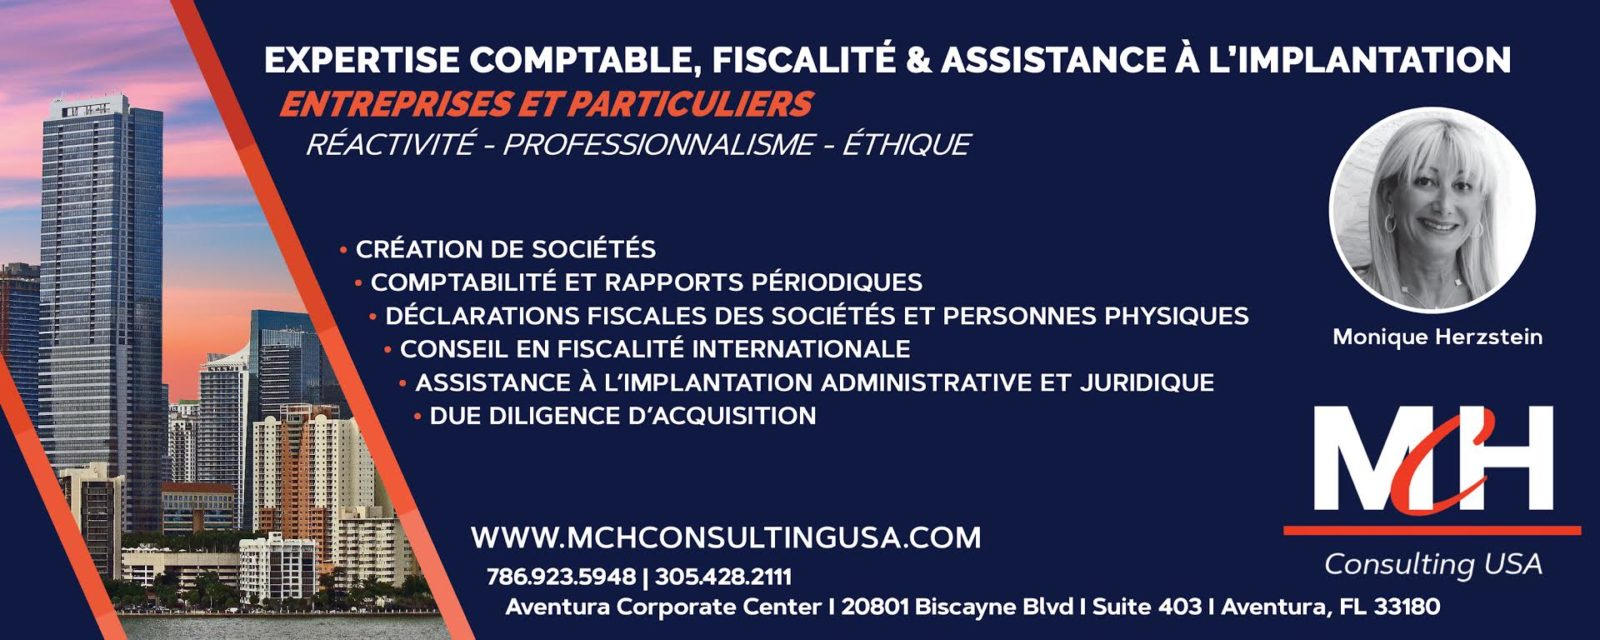 mch-consulting-monique-herzstein-comptable-francais-miami-s-06